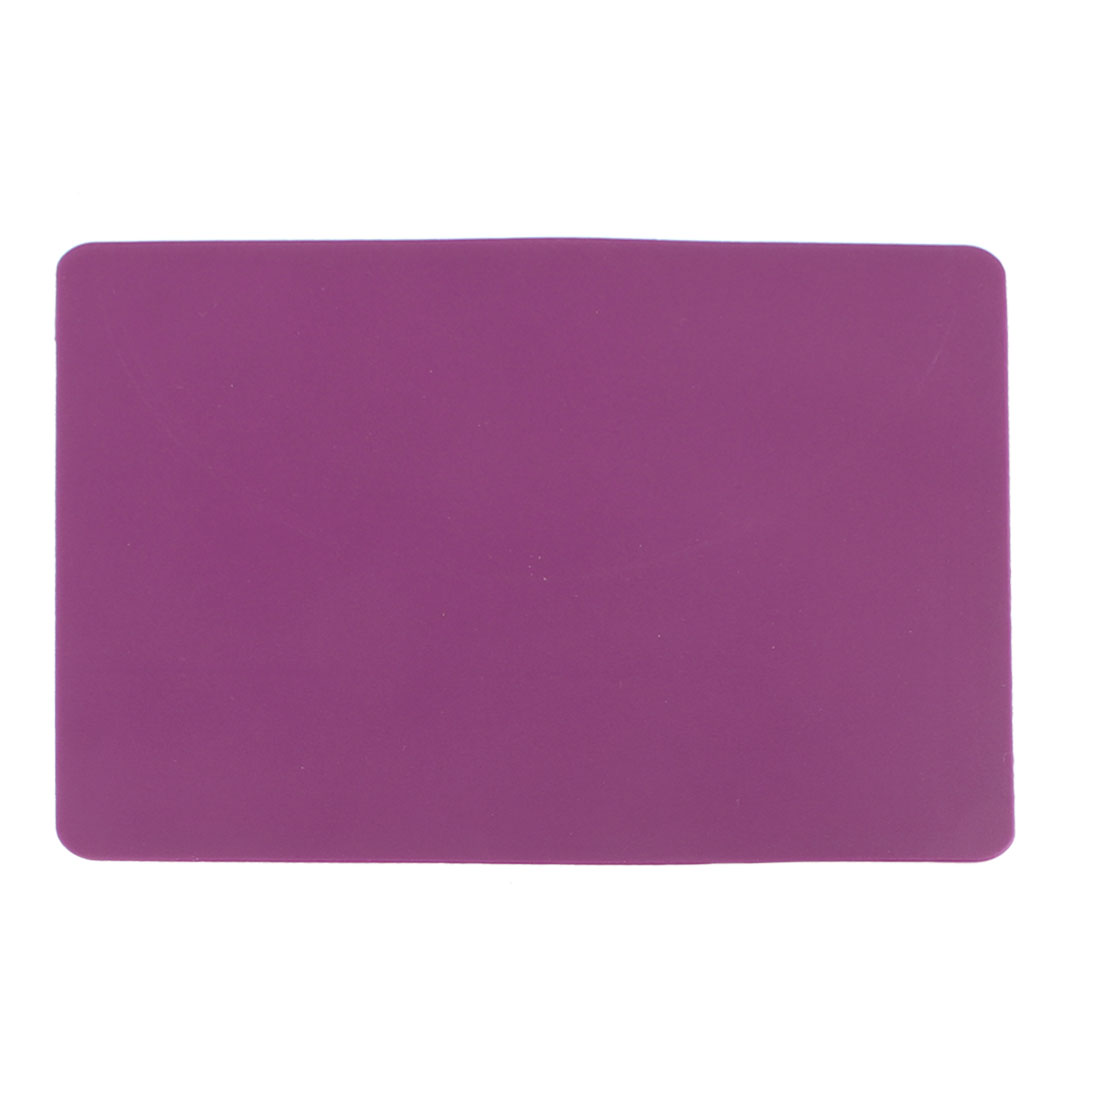 23cm x 19cm Silicone Nonslip Purple Mouse Pad Mat for Laptop